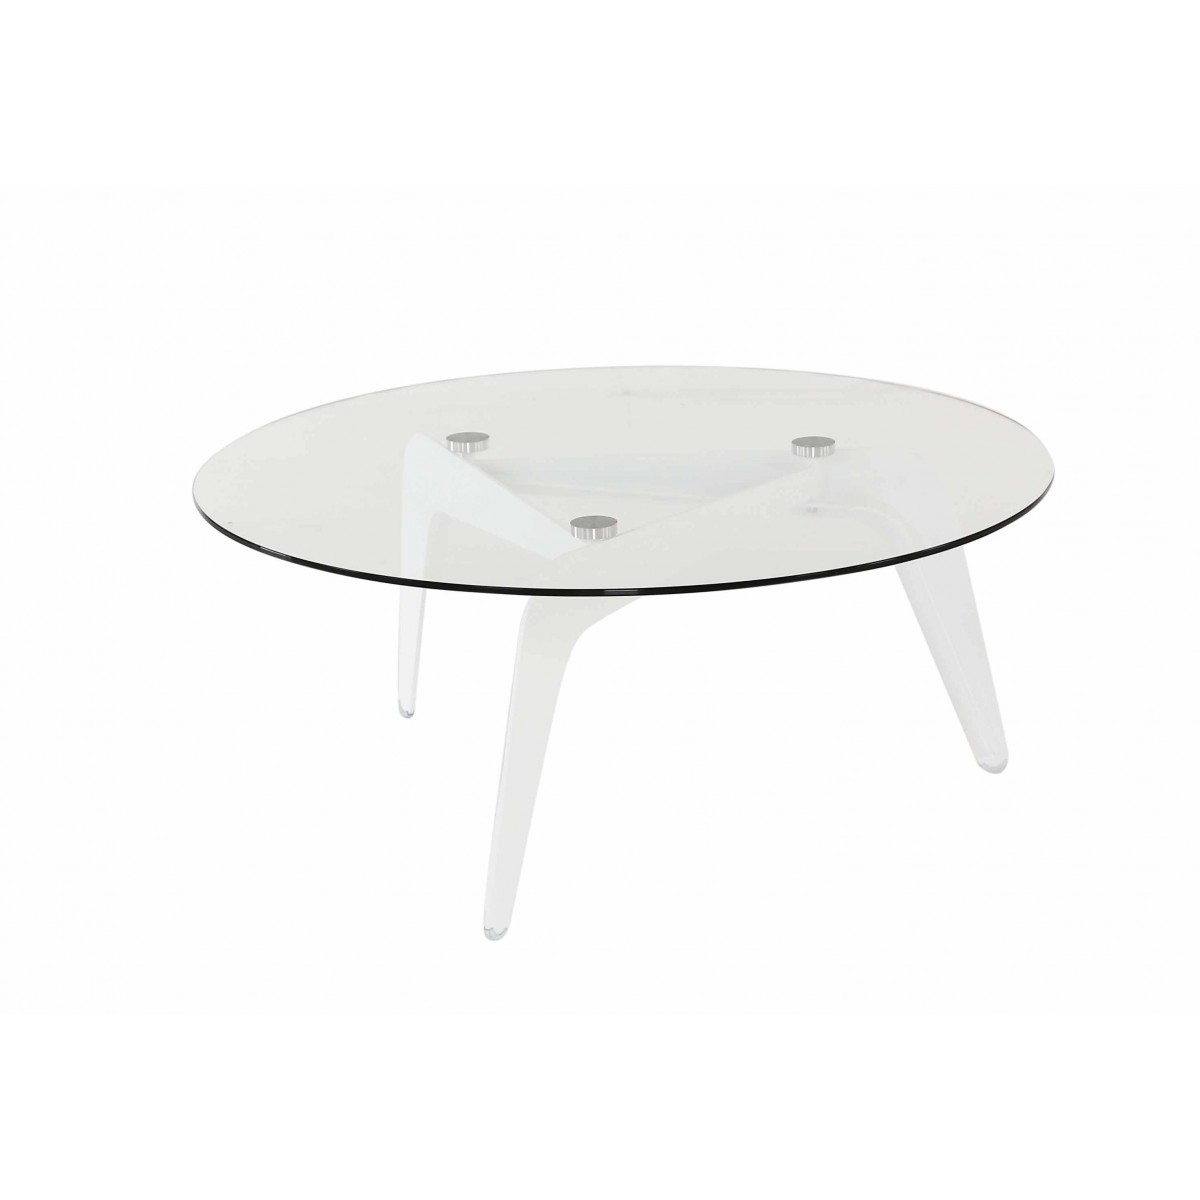 Table basse ronde en verre design mooviin - Table basse ronde verre et bois ...